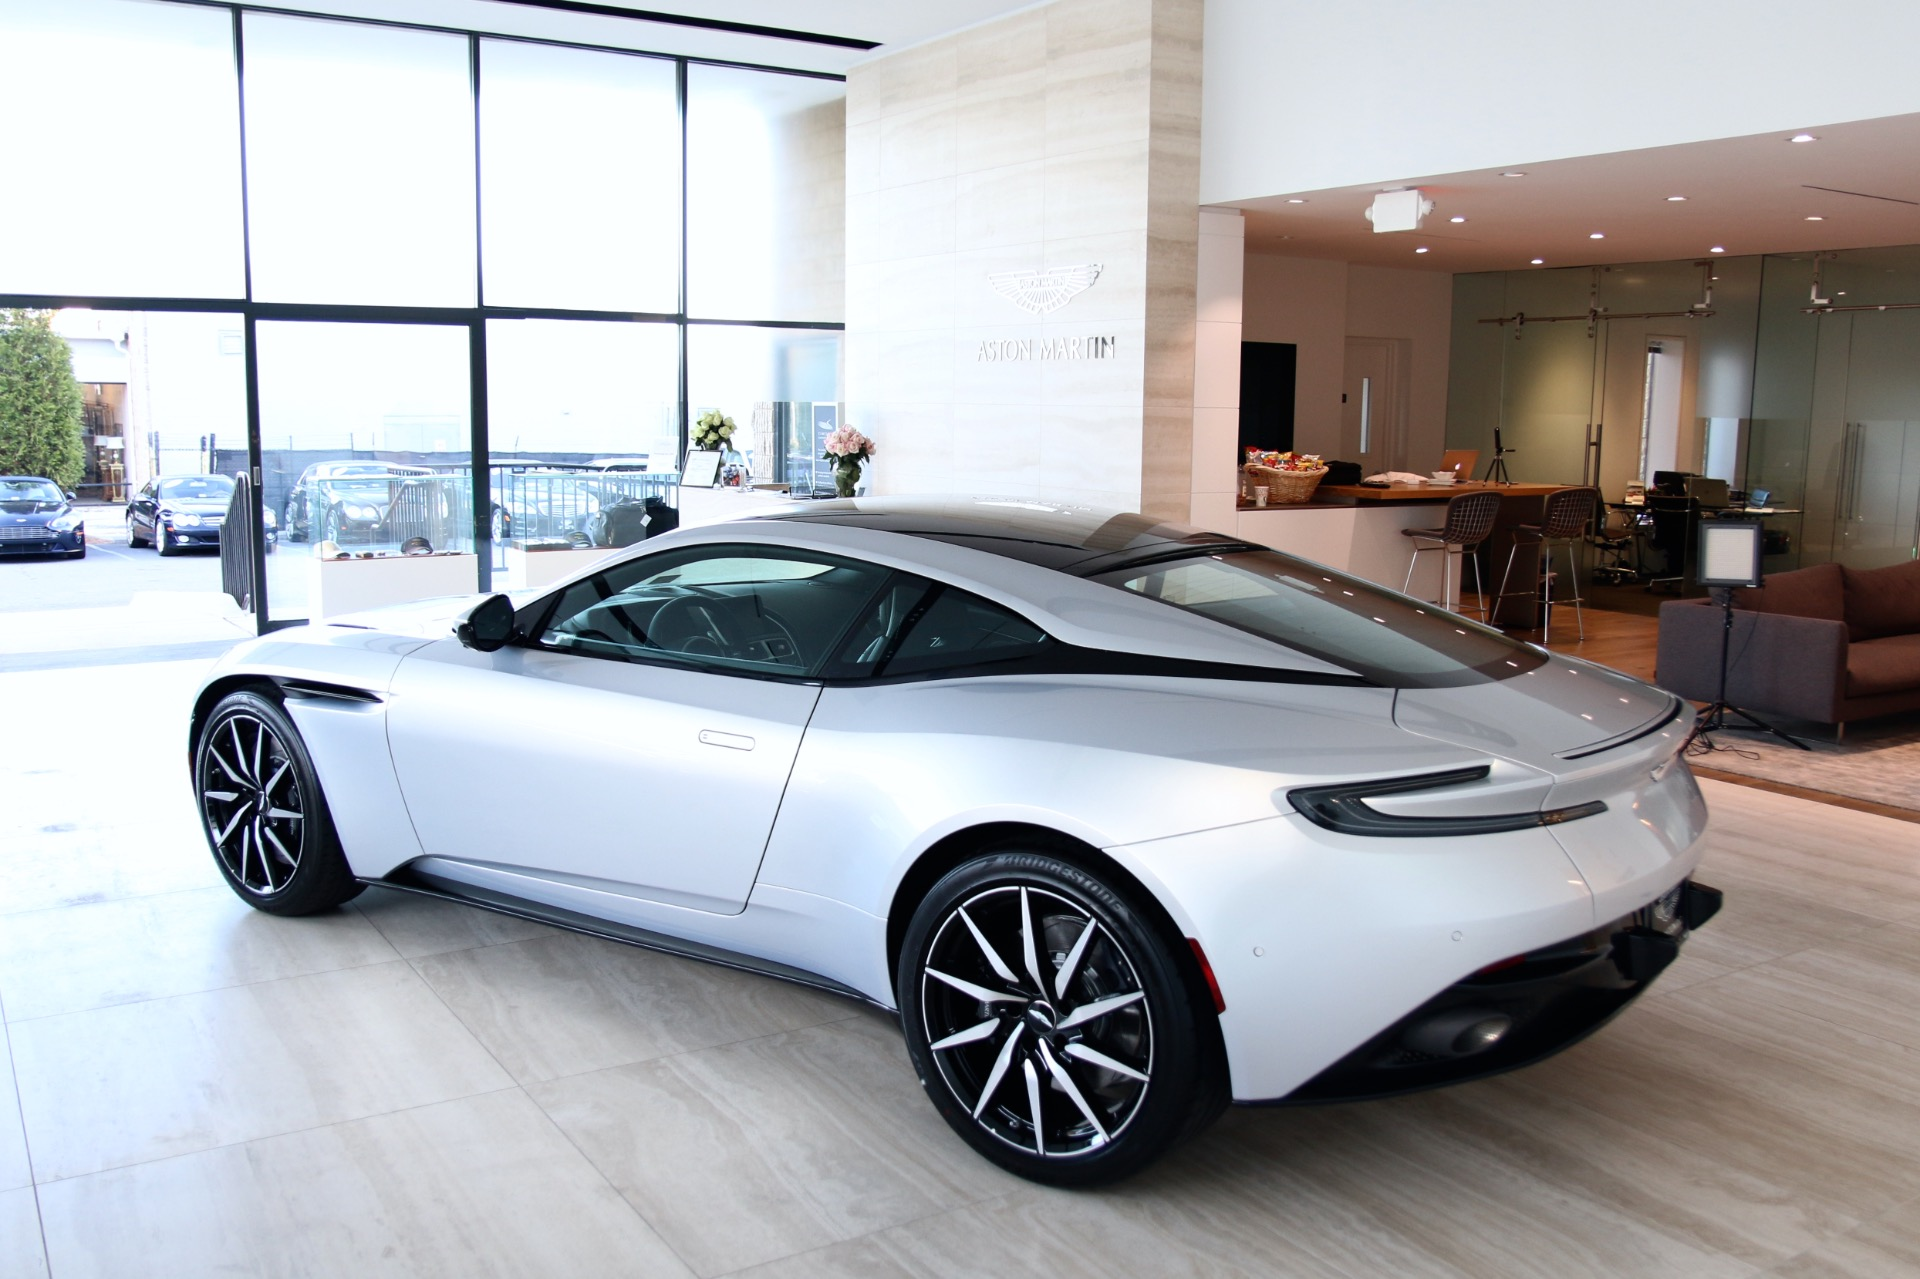 2018 Aston Martin Db11 V12 Stock 8nl03115 For Sale Near Vienna Va